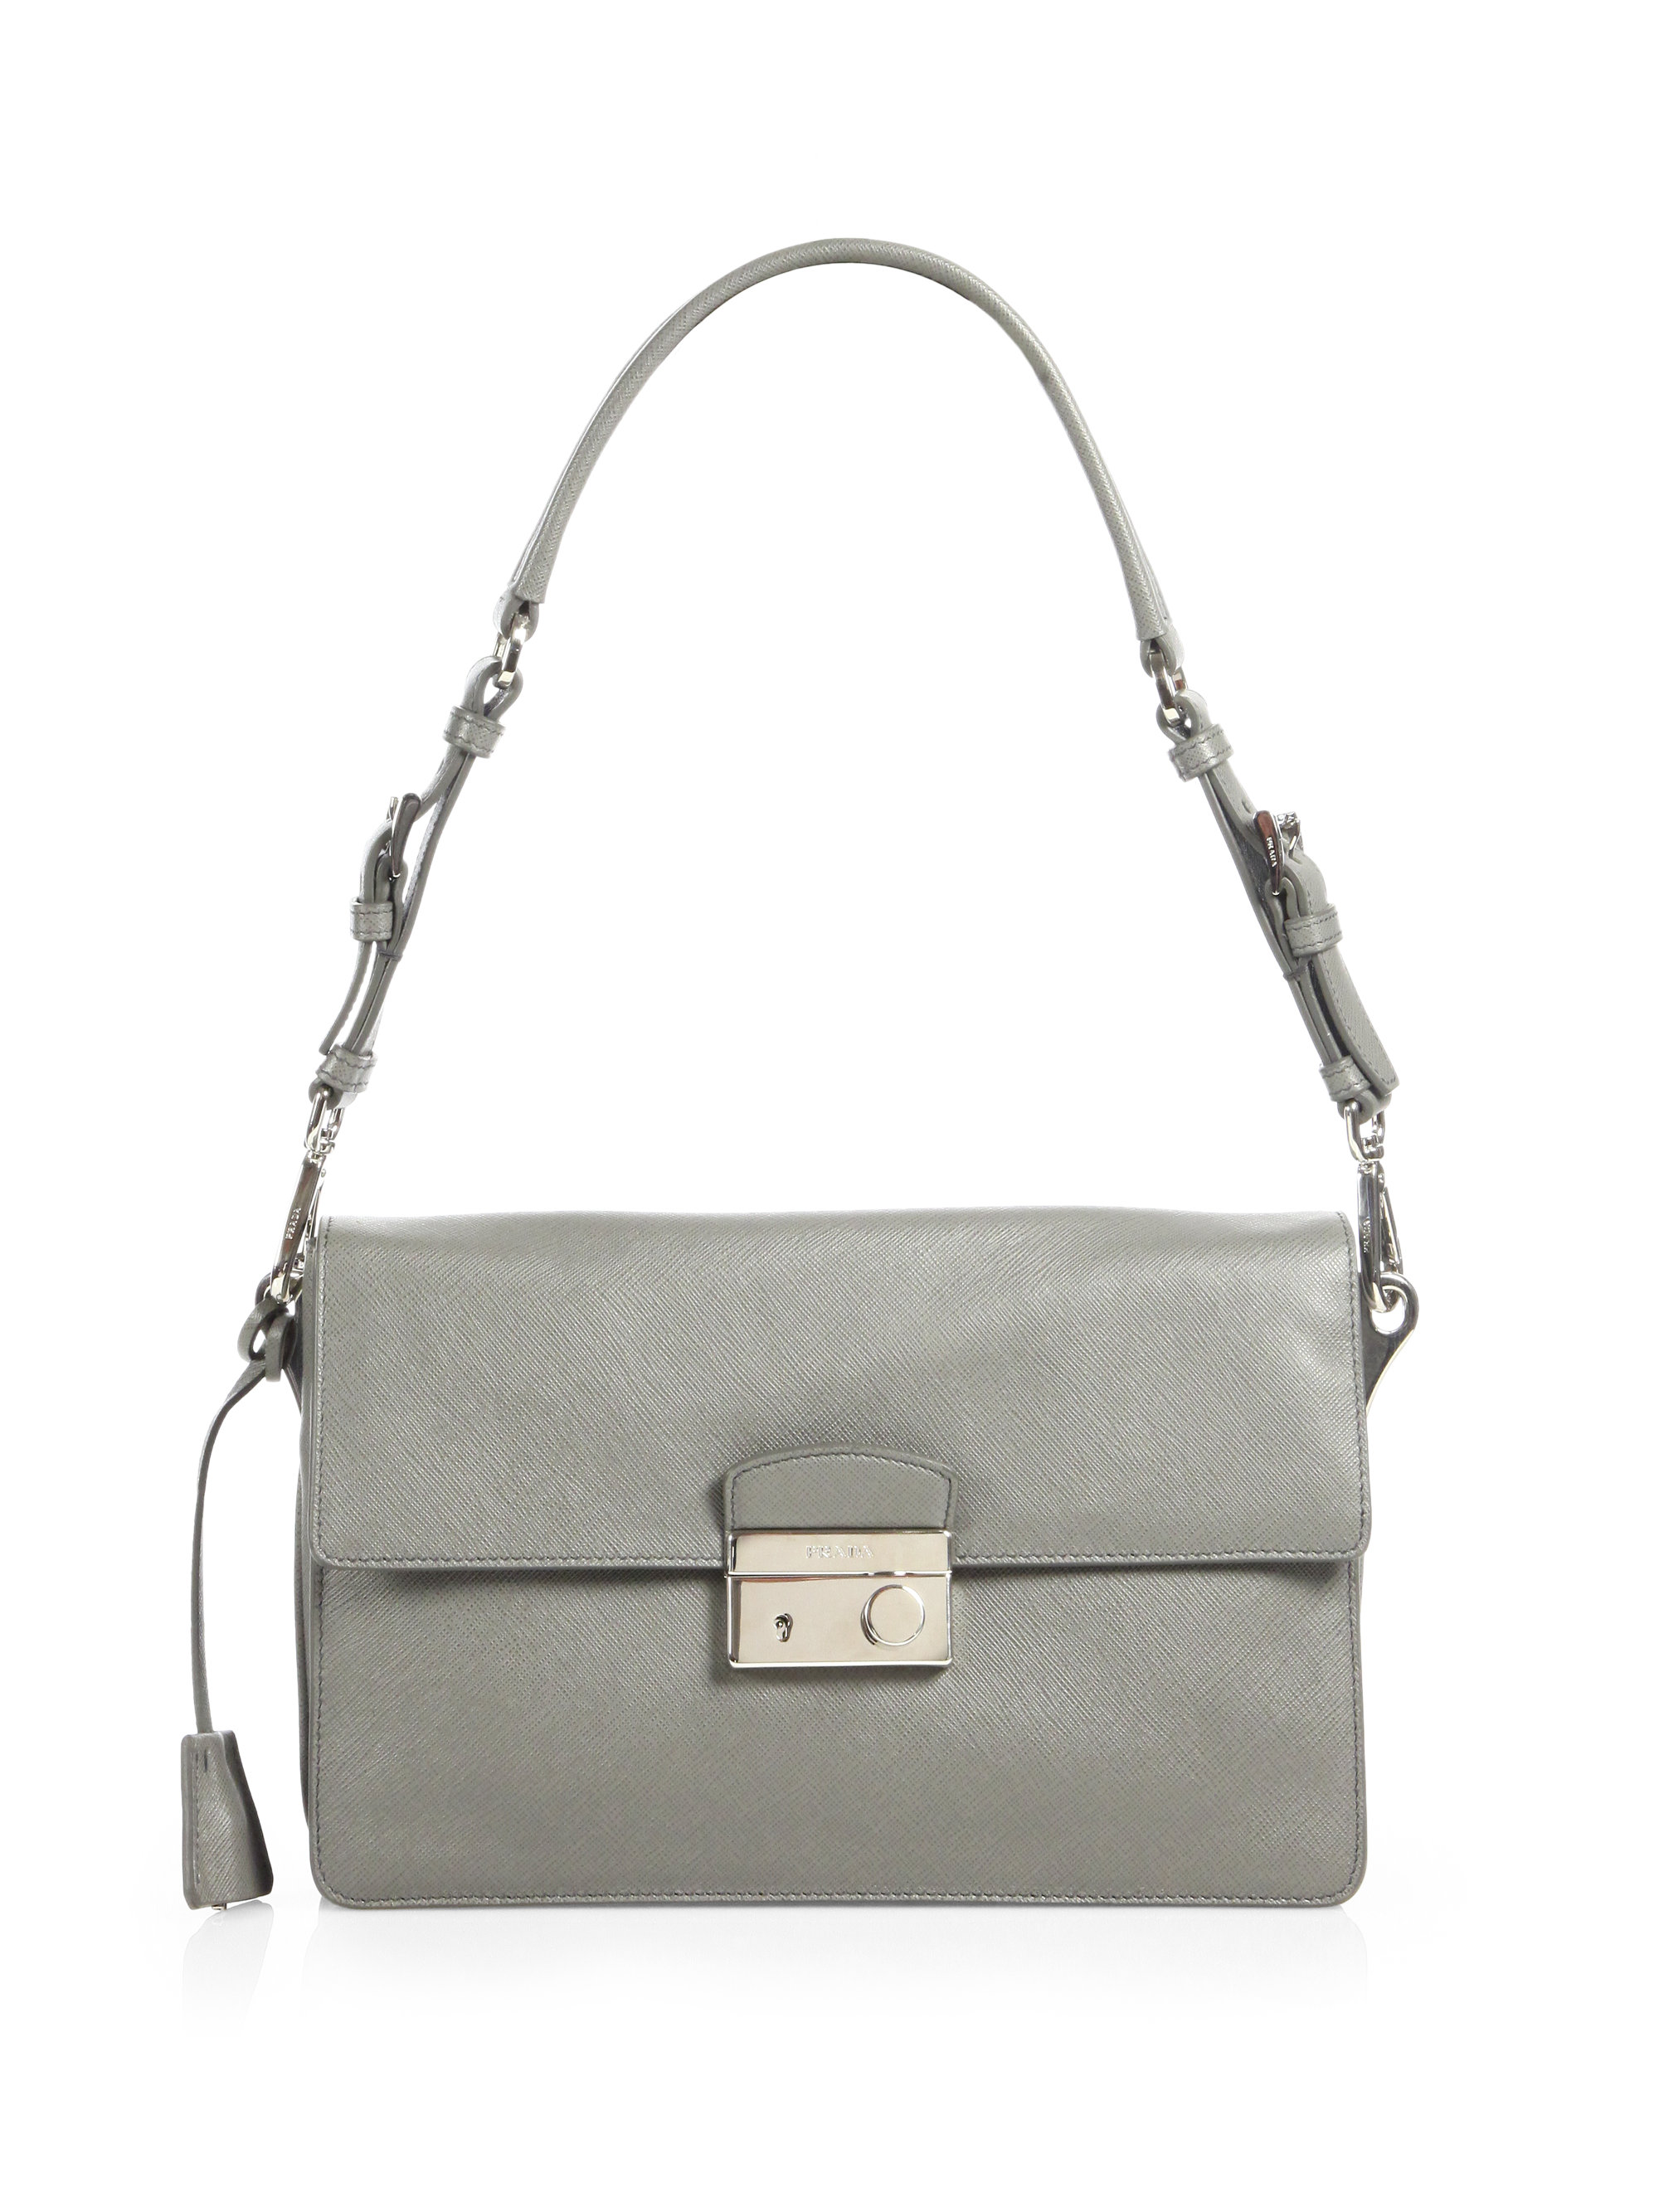 wallets prada - prada grey saffiano bag